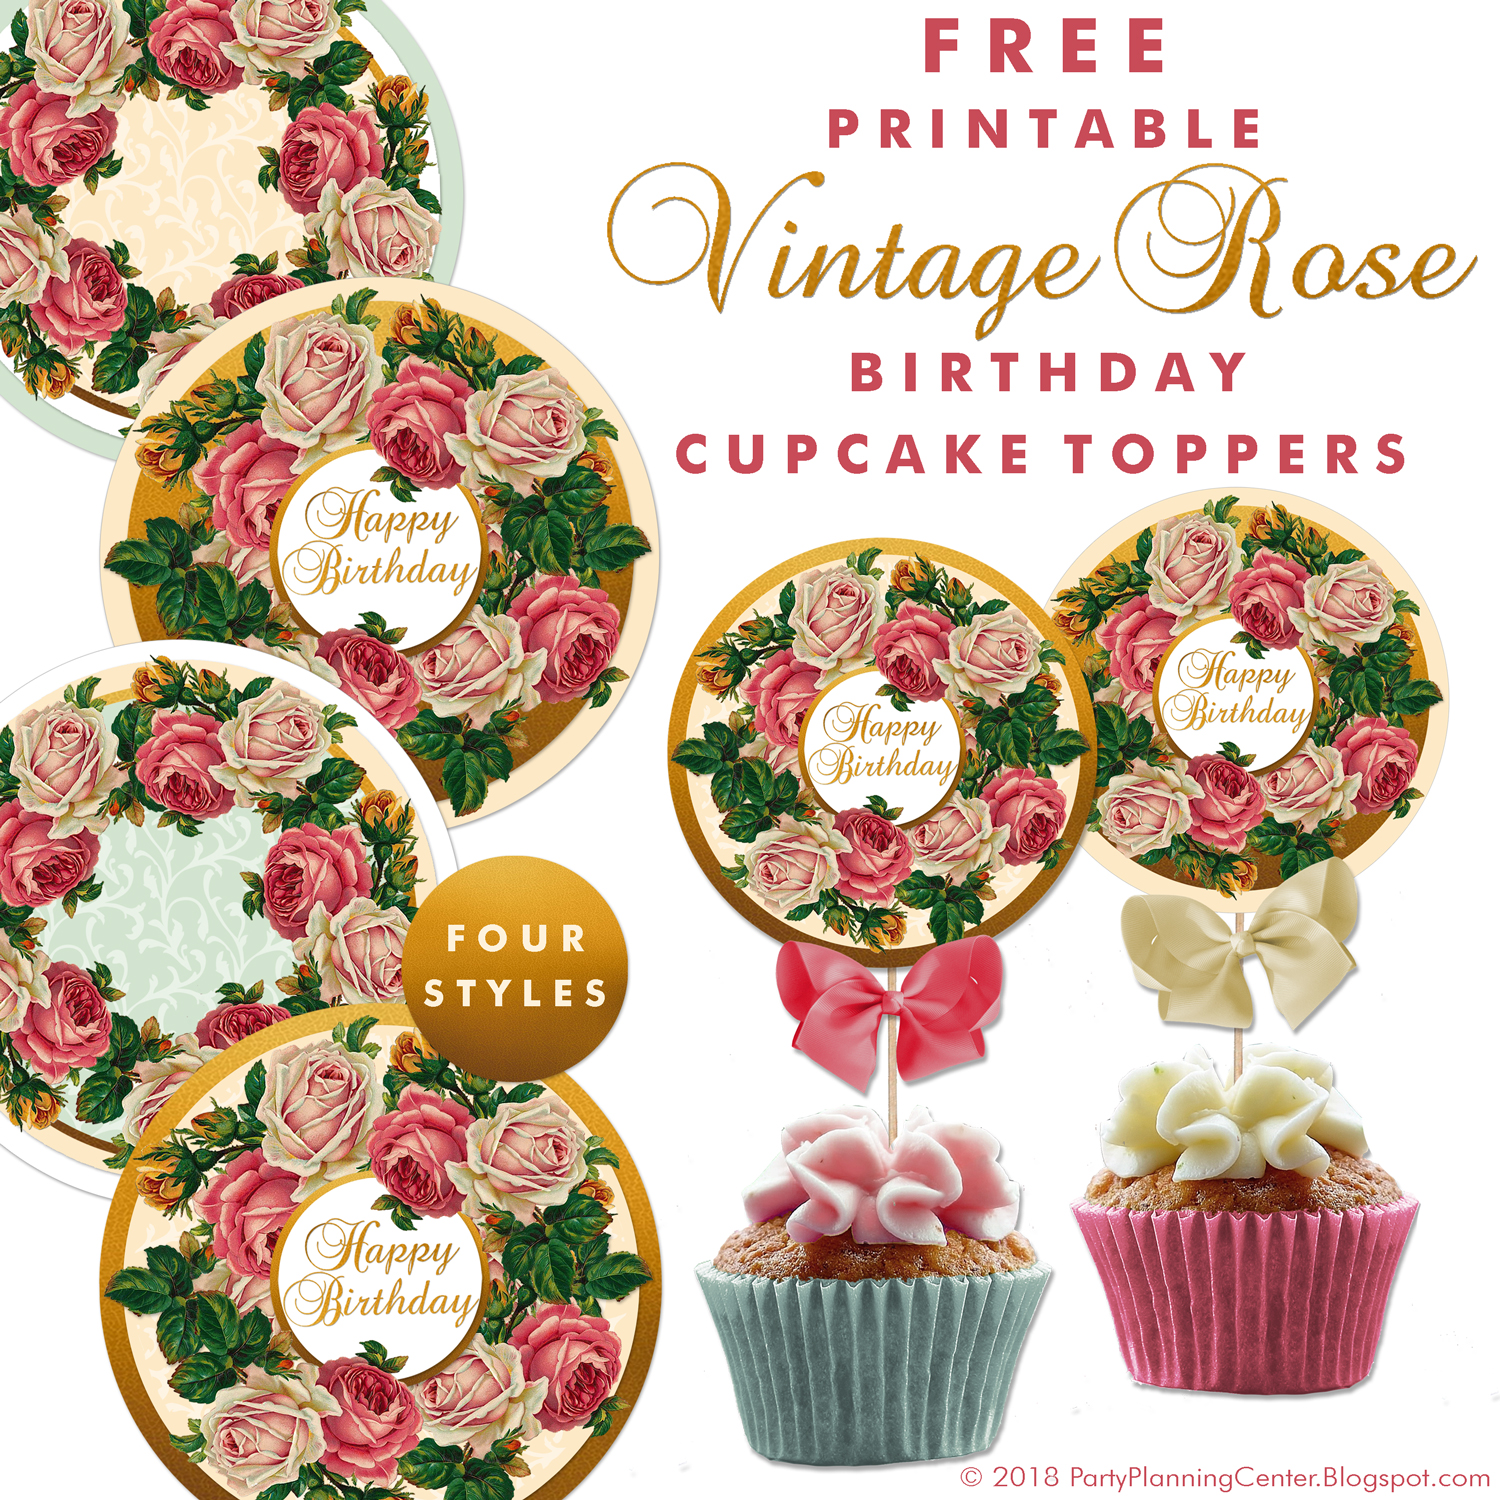 These Free Birthday And All Occasion Cupcake Toppers Are Yet Another Appearance Of Lovely Vintage Roses I Couldnt Resist Making A Bunch Printables With